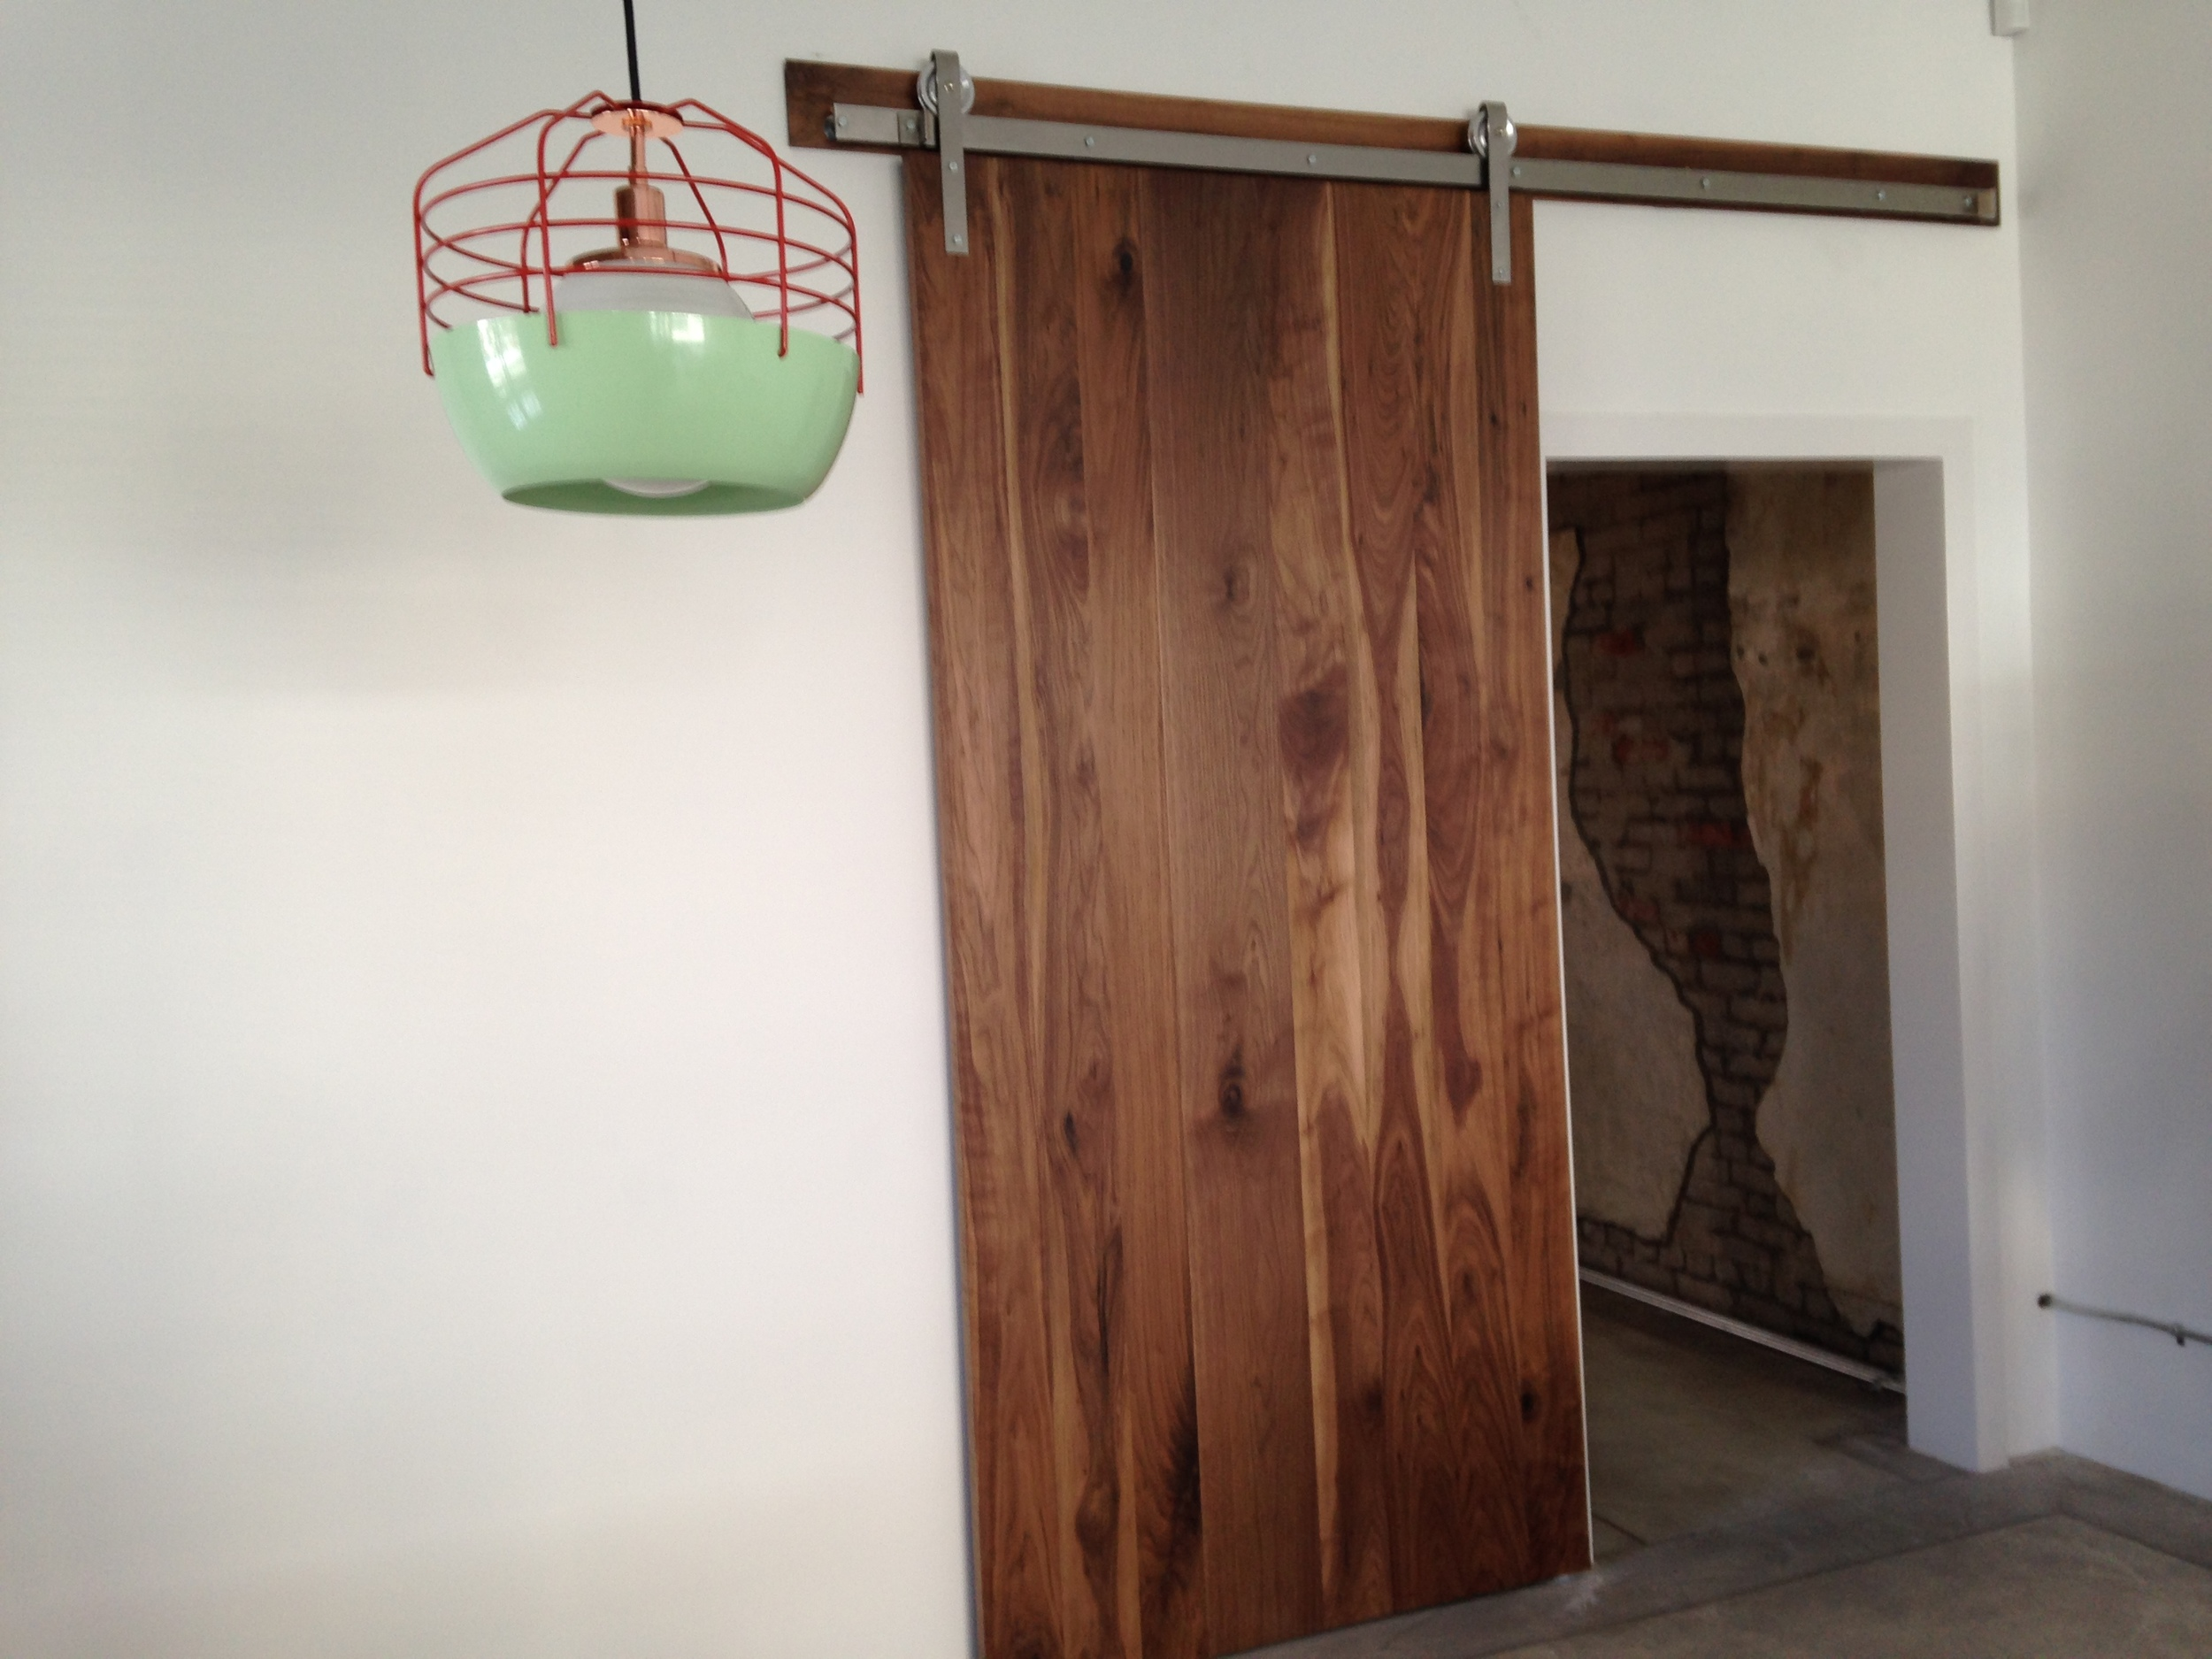 That pendant is quirky, and charming and just goes perfect with that sliding walnut door!